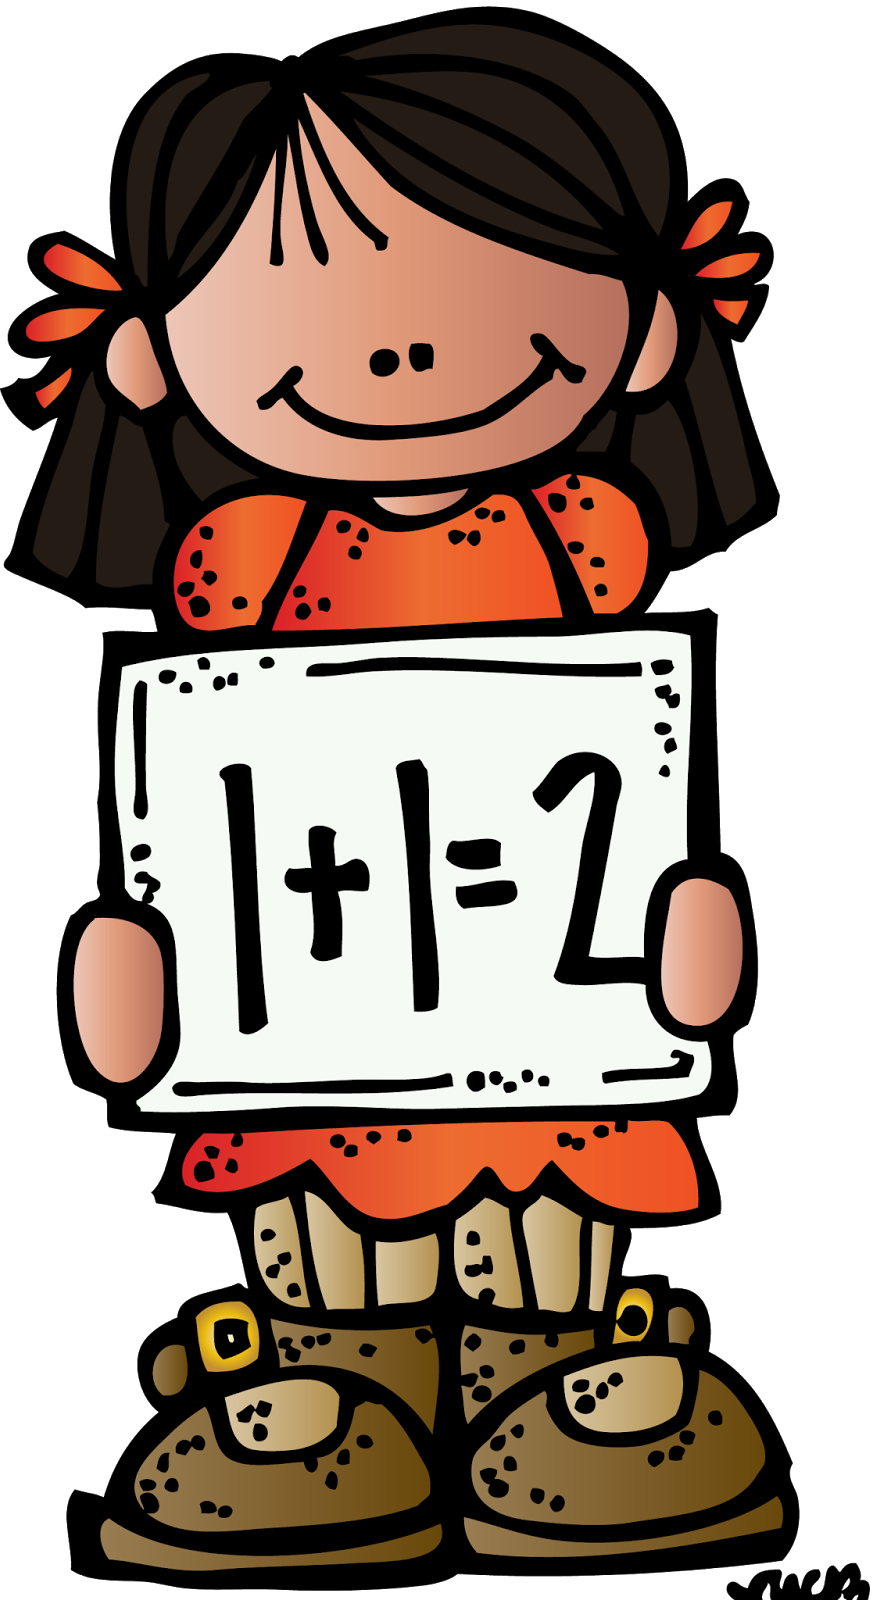 Emergency clipart teacher. Melonheadz family buscar con